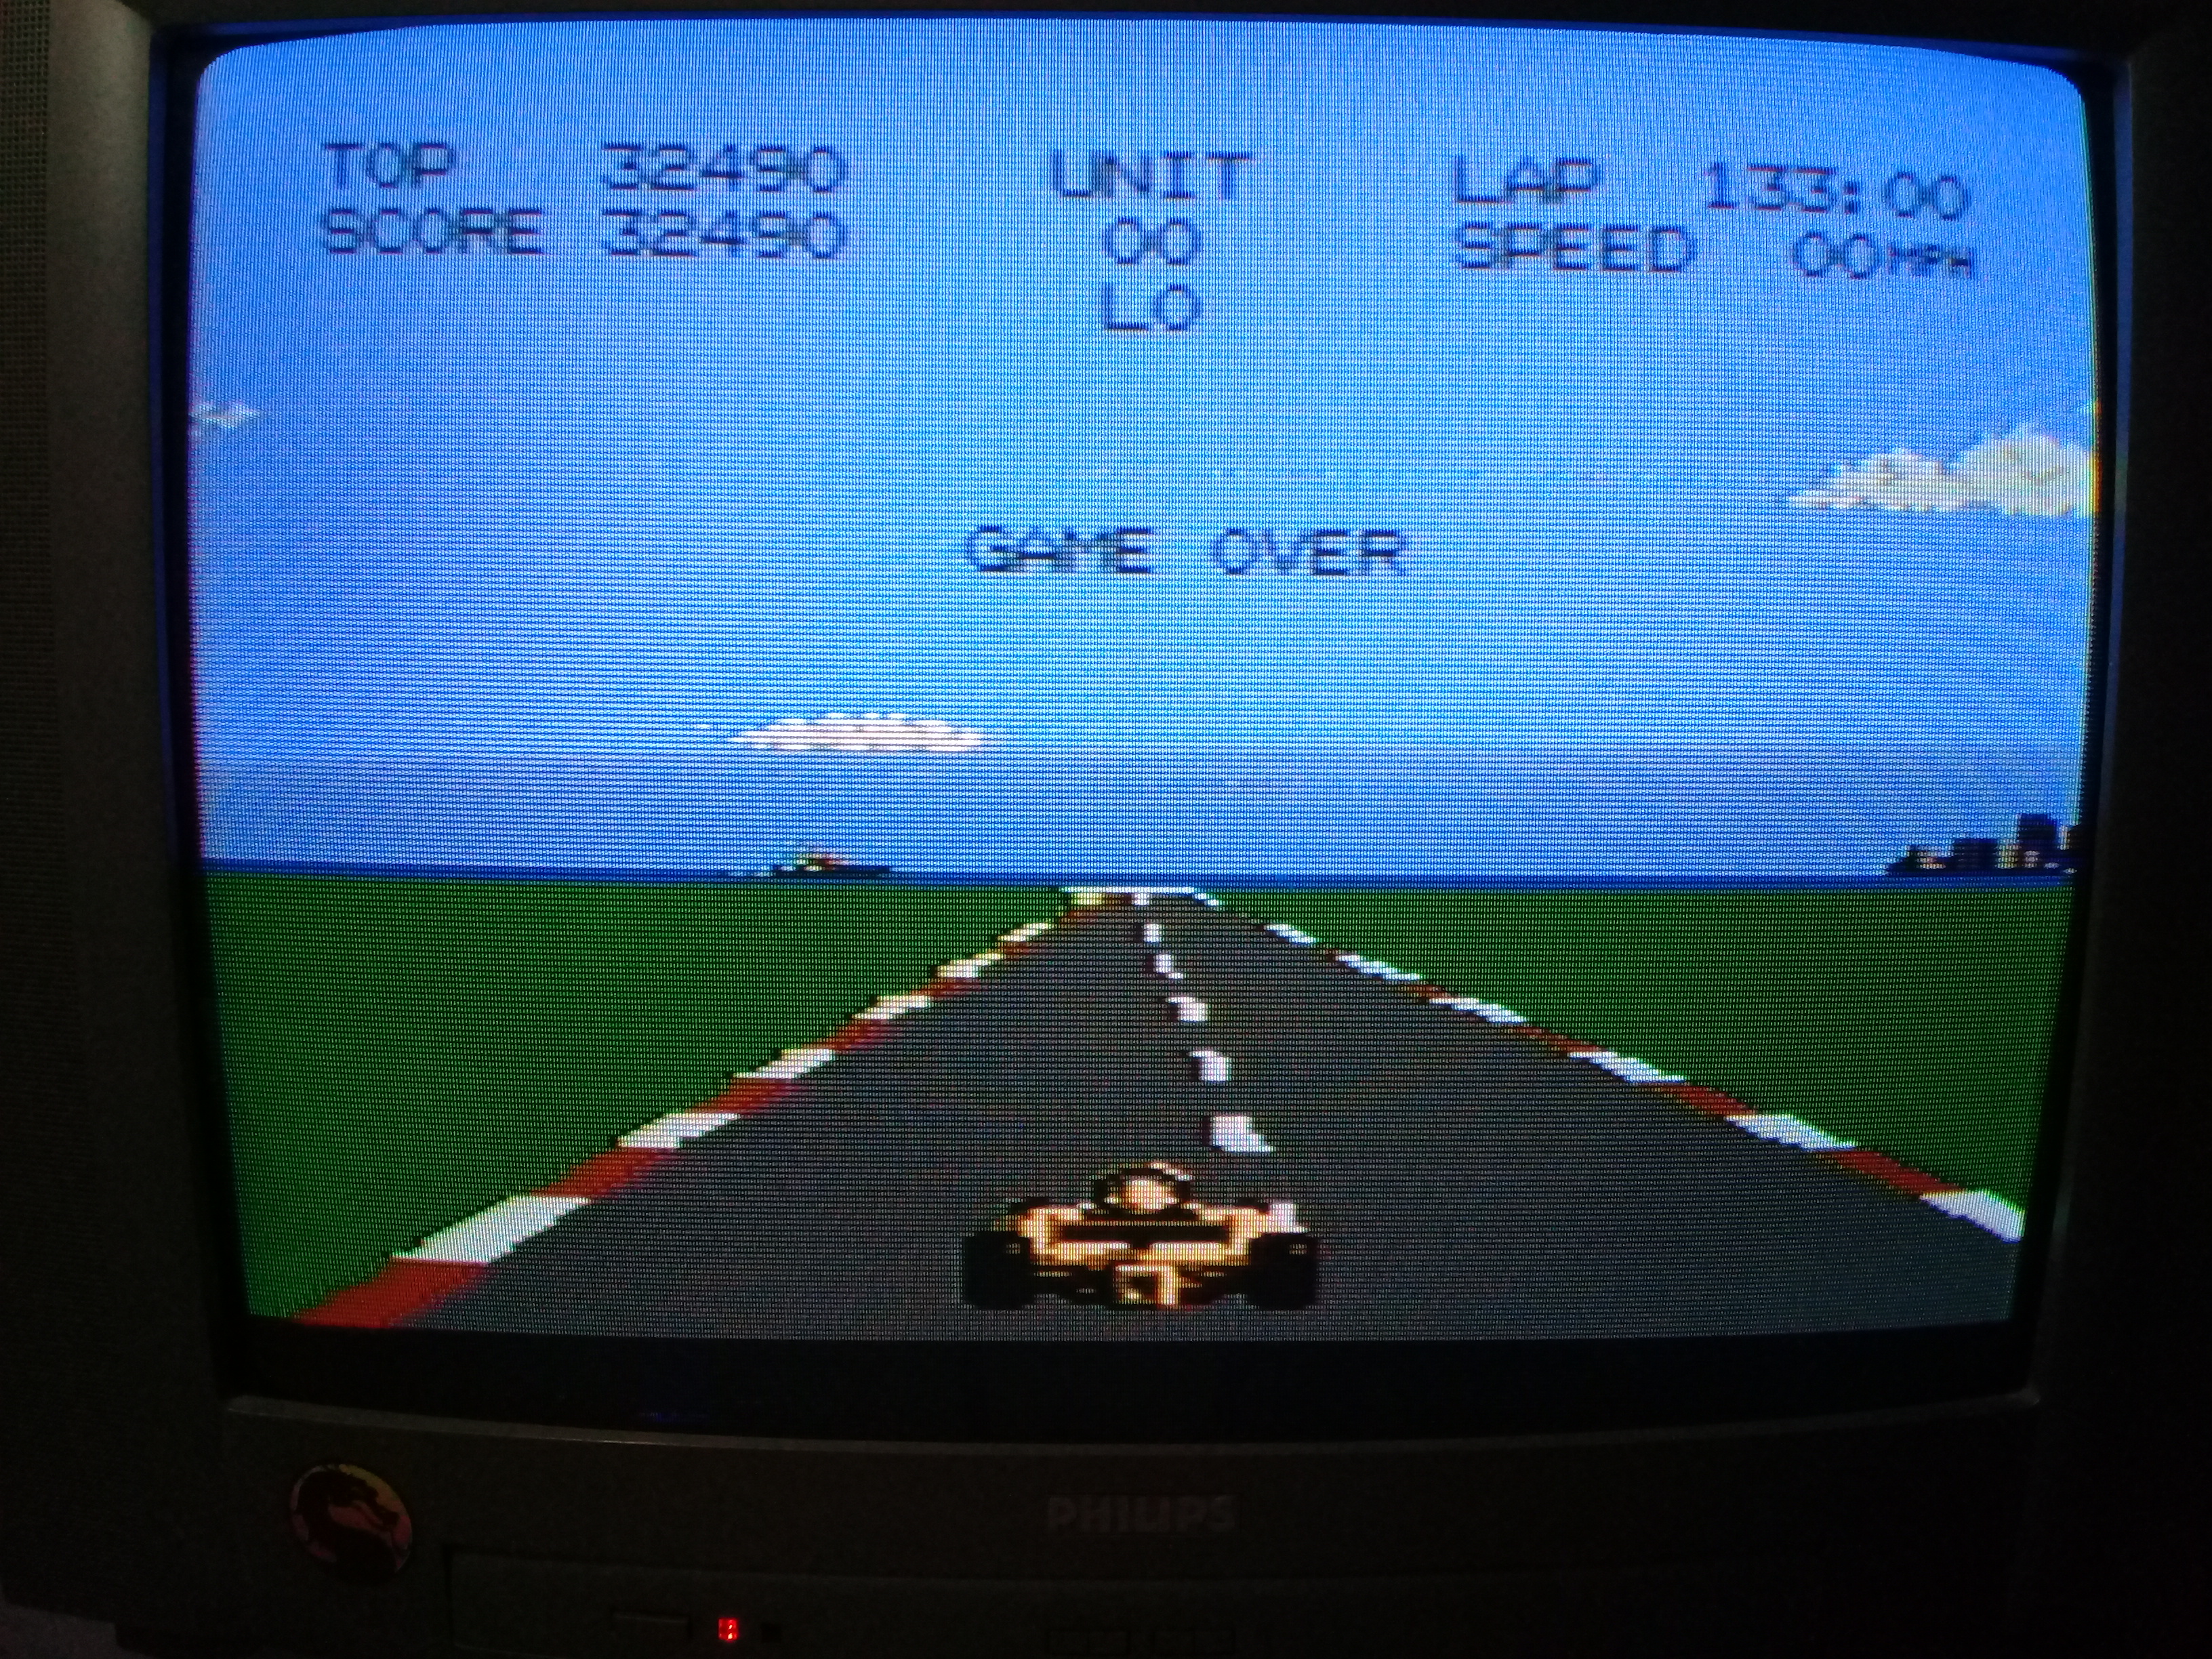 omargeddon: Pole Position 2: Seaside (Atari 7800) 32,490 points on 2020-09-12 19:40:19